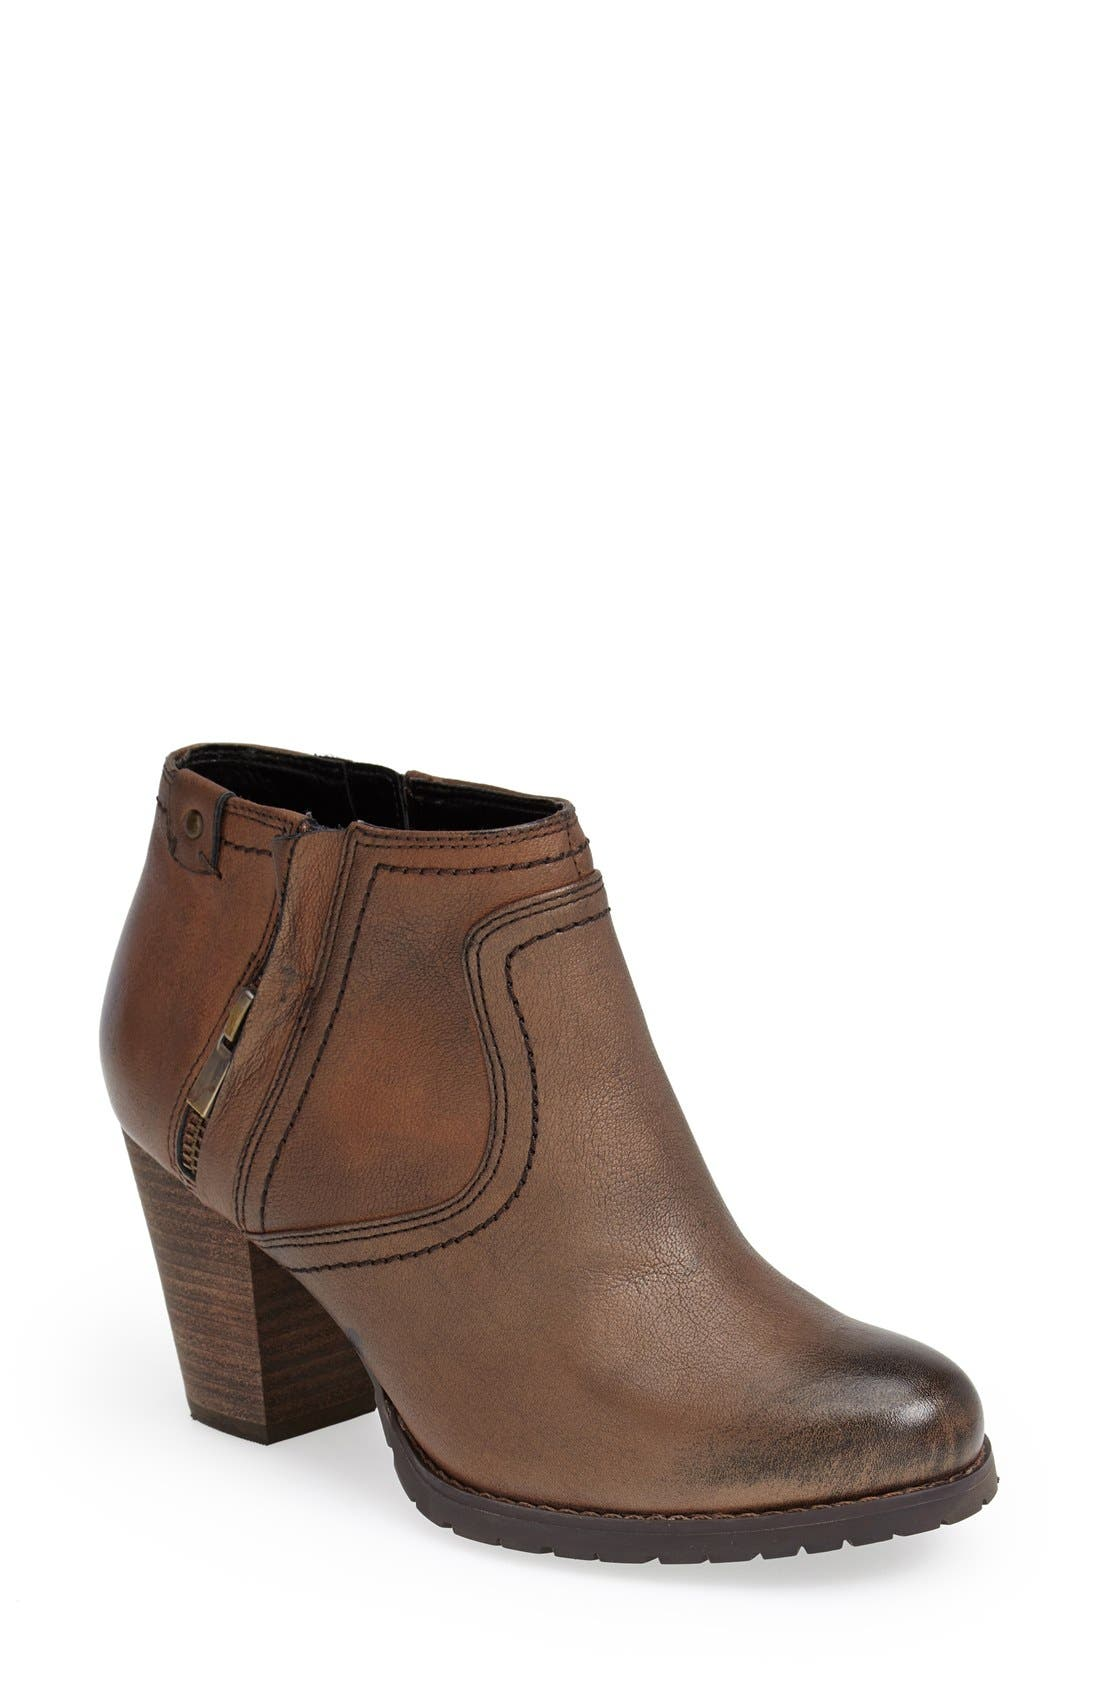 Alternate Image 1 Selected - Clarks 'Mission Halle' Bootie (Women)